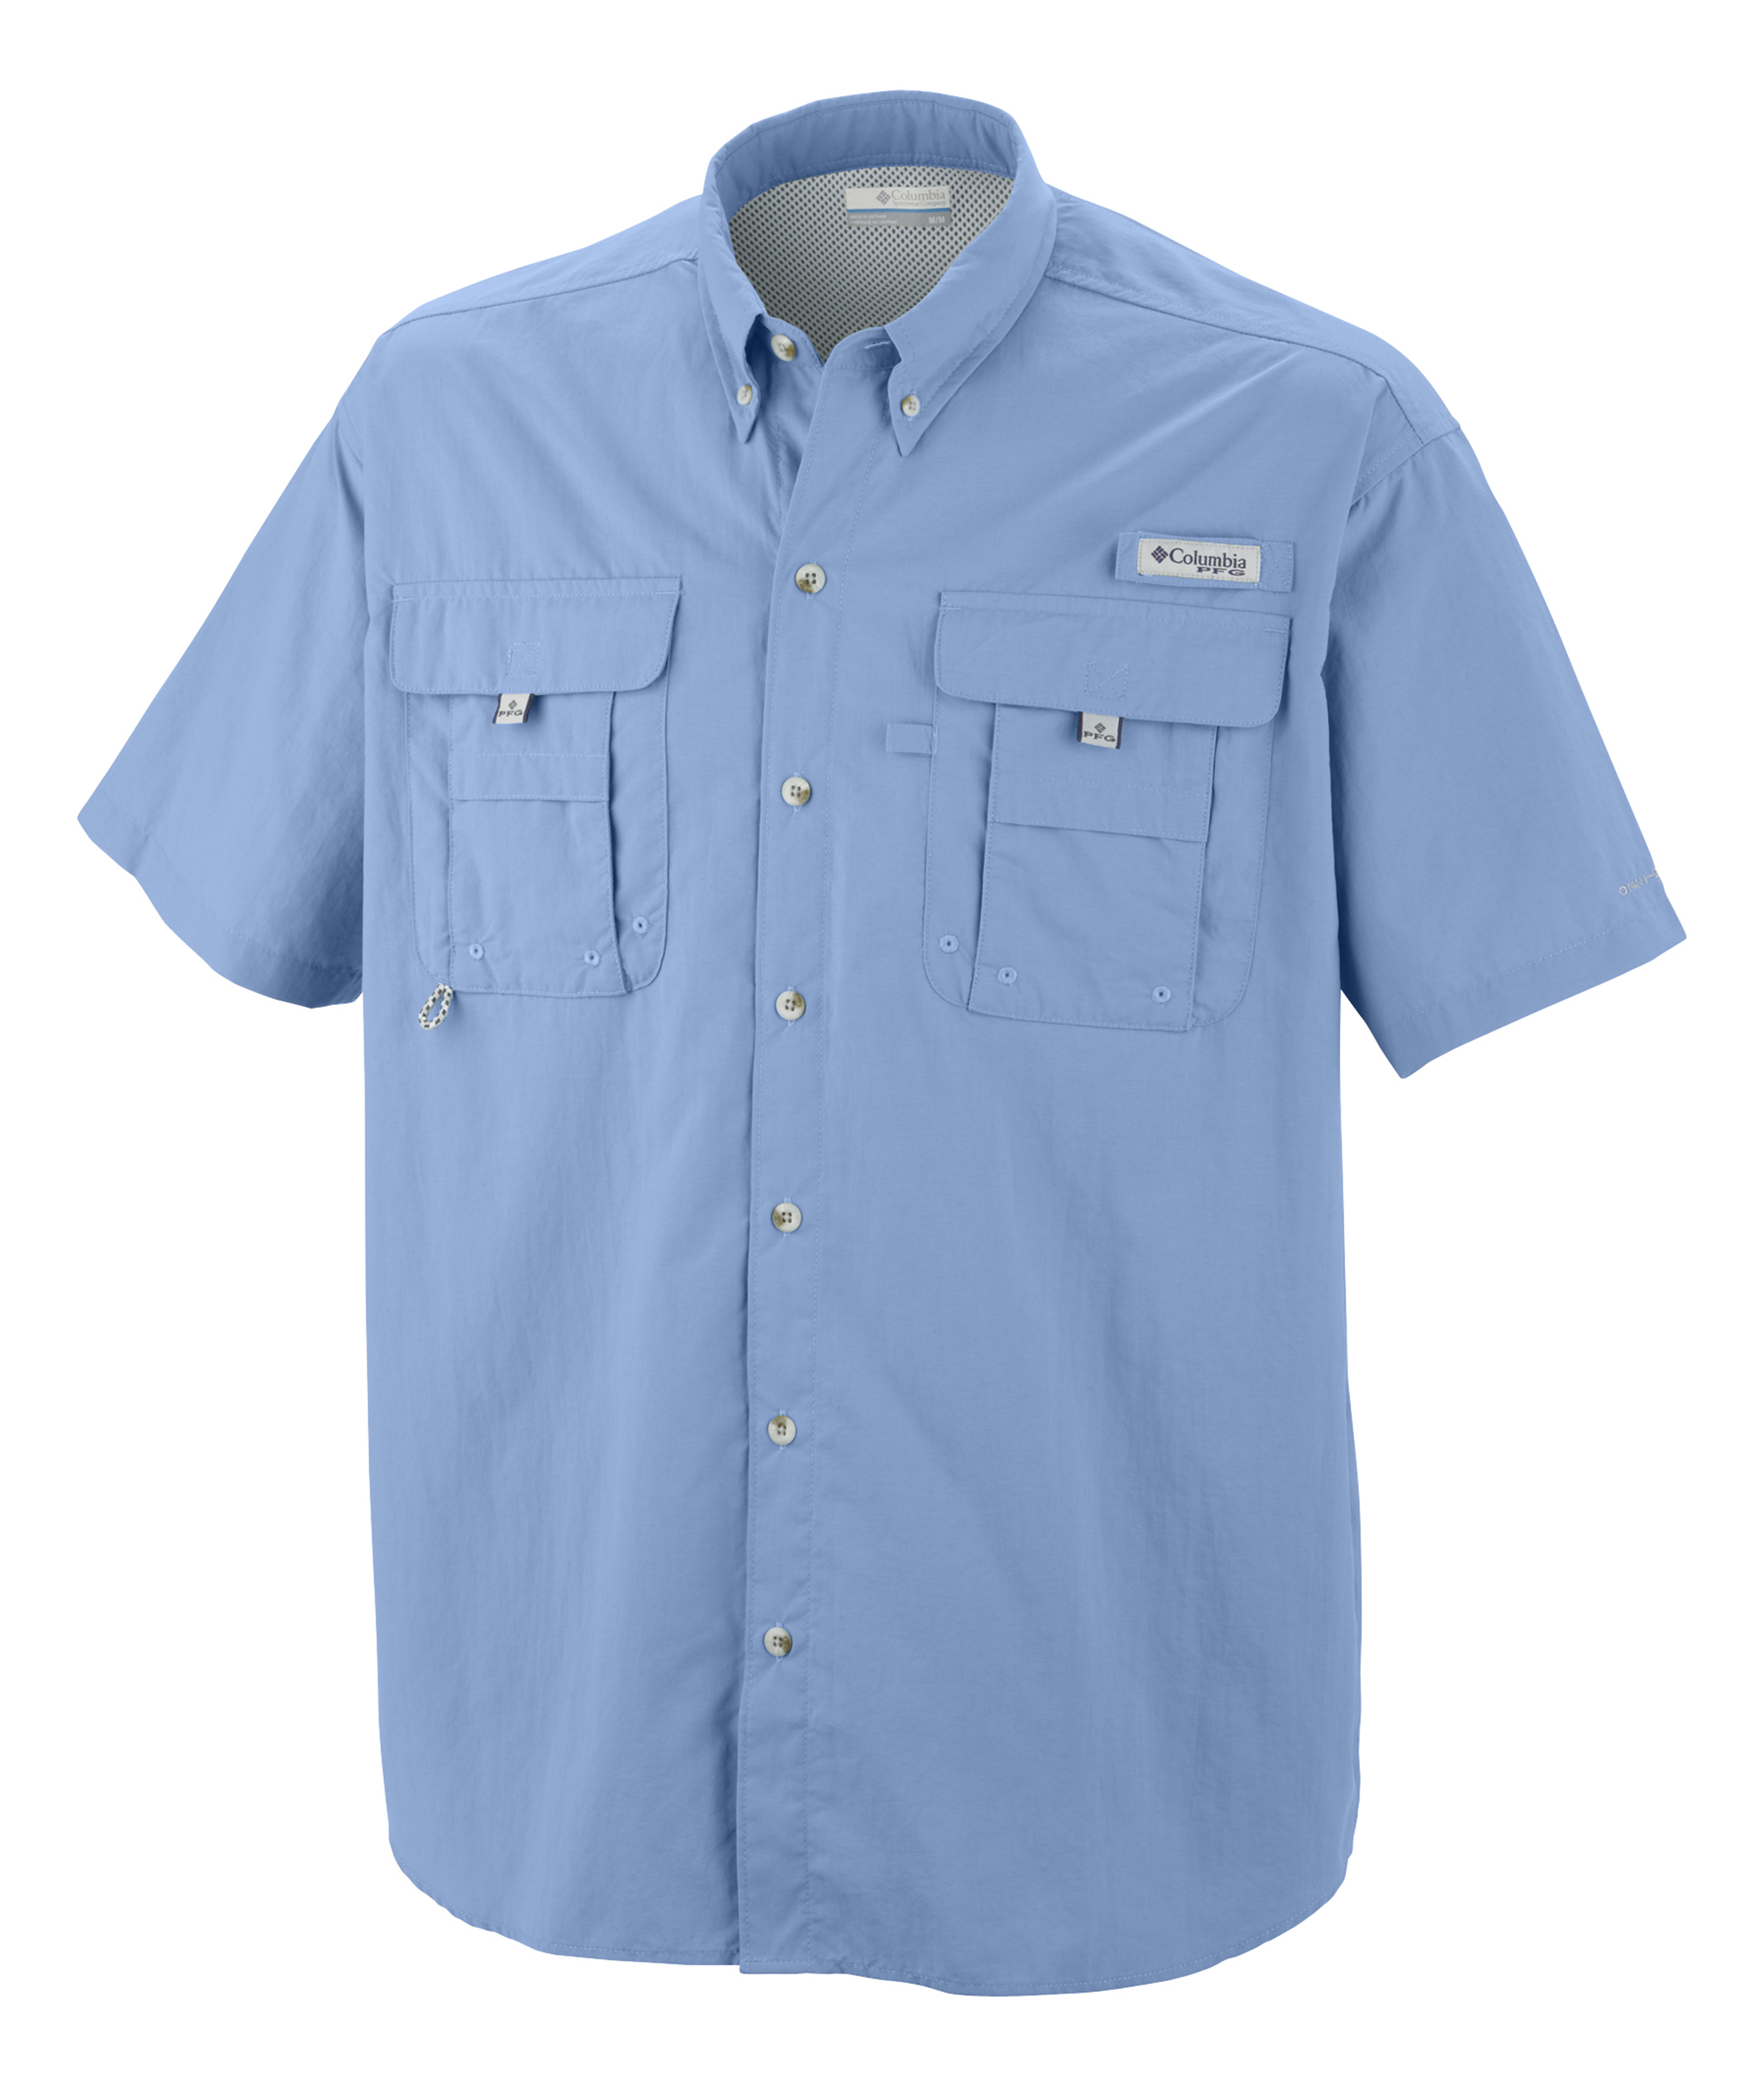 Columbia men 39 s bahama ii short sleeve shirt 7047 for Embroidered columbia fishing shirts